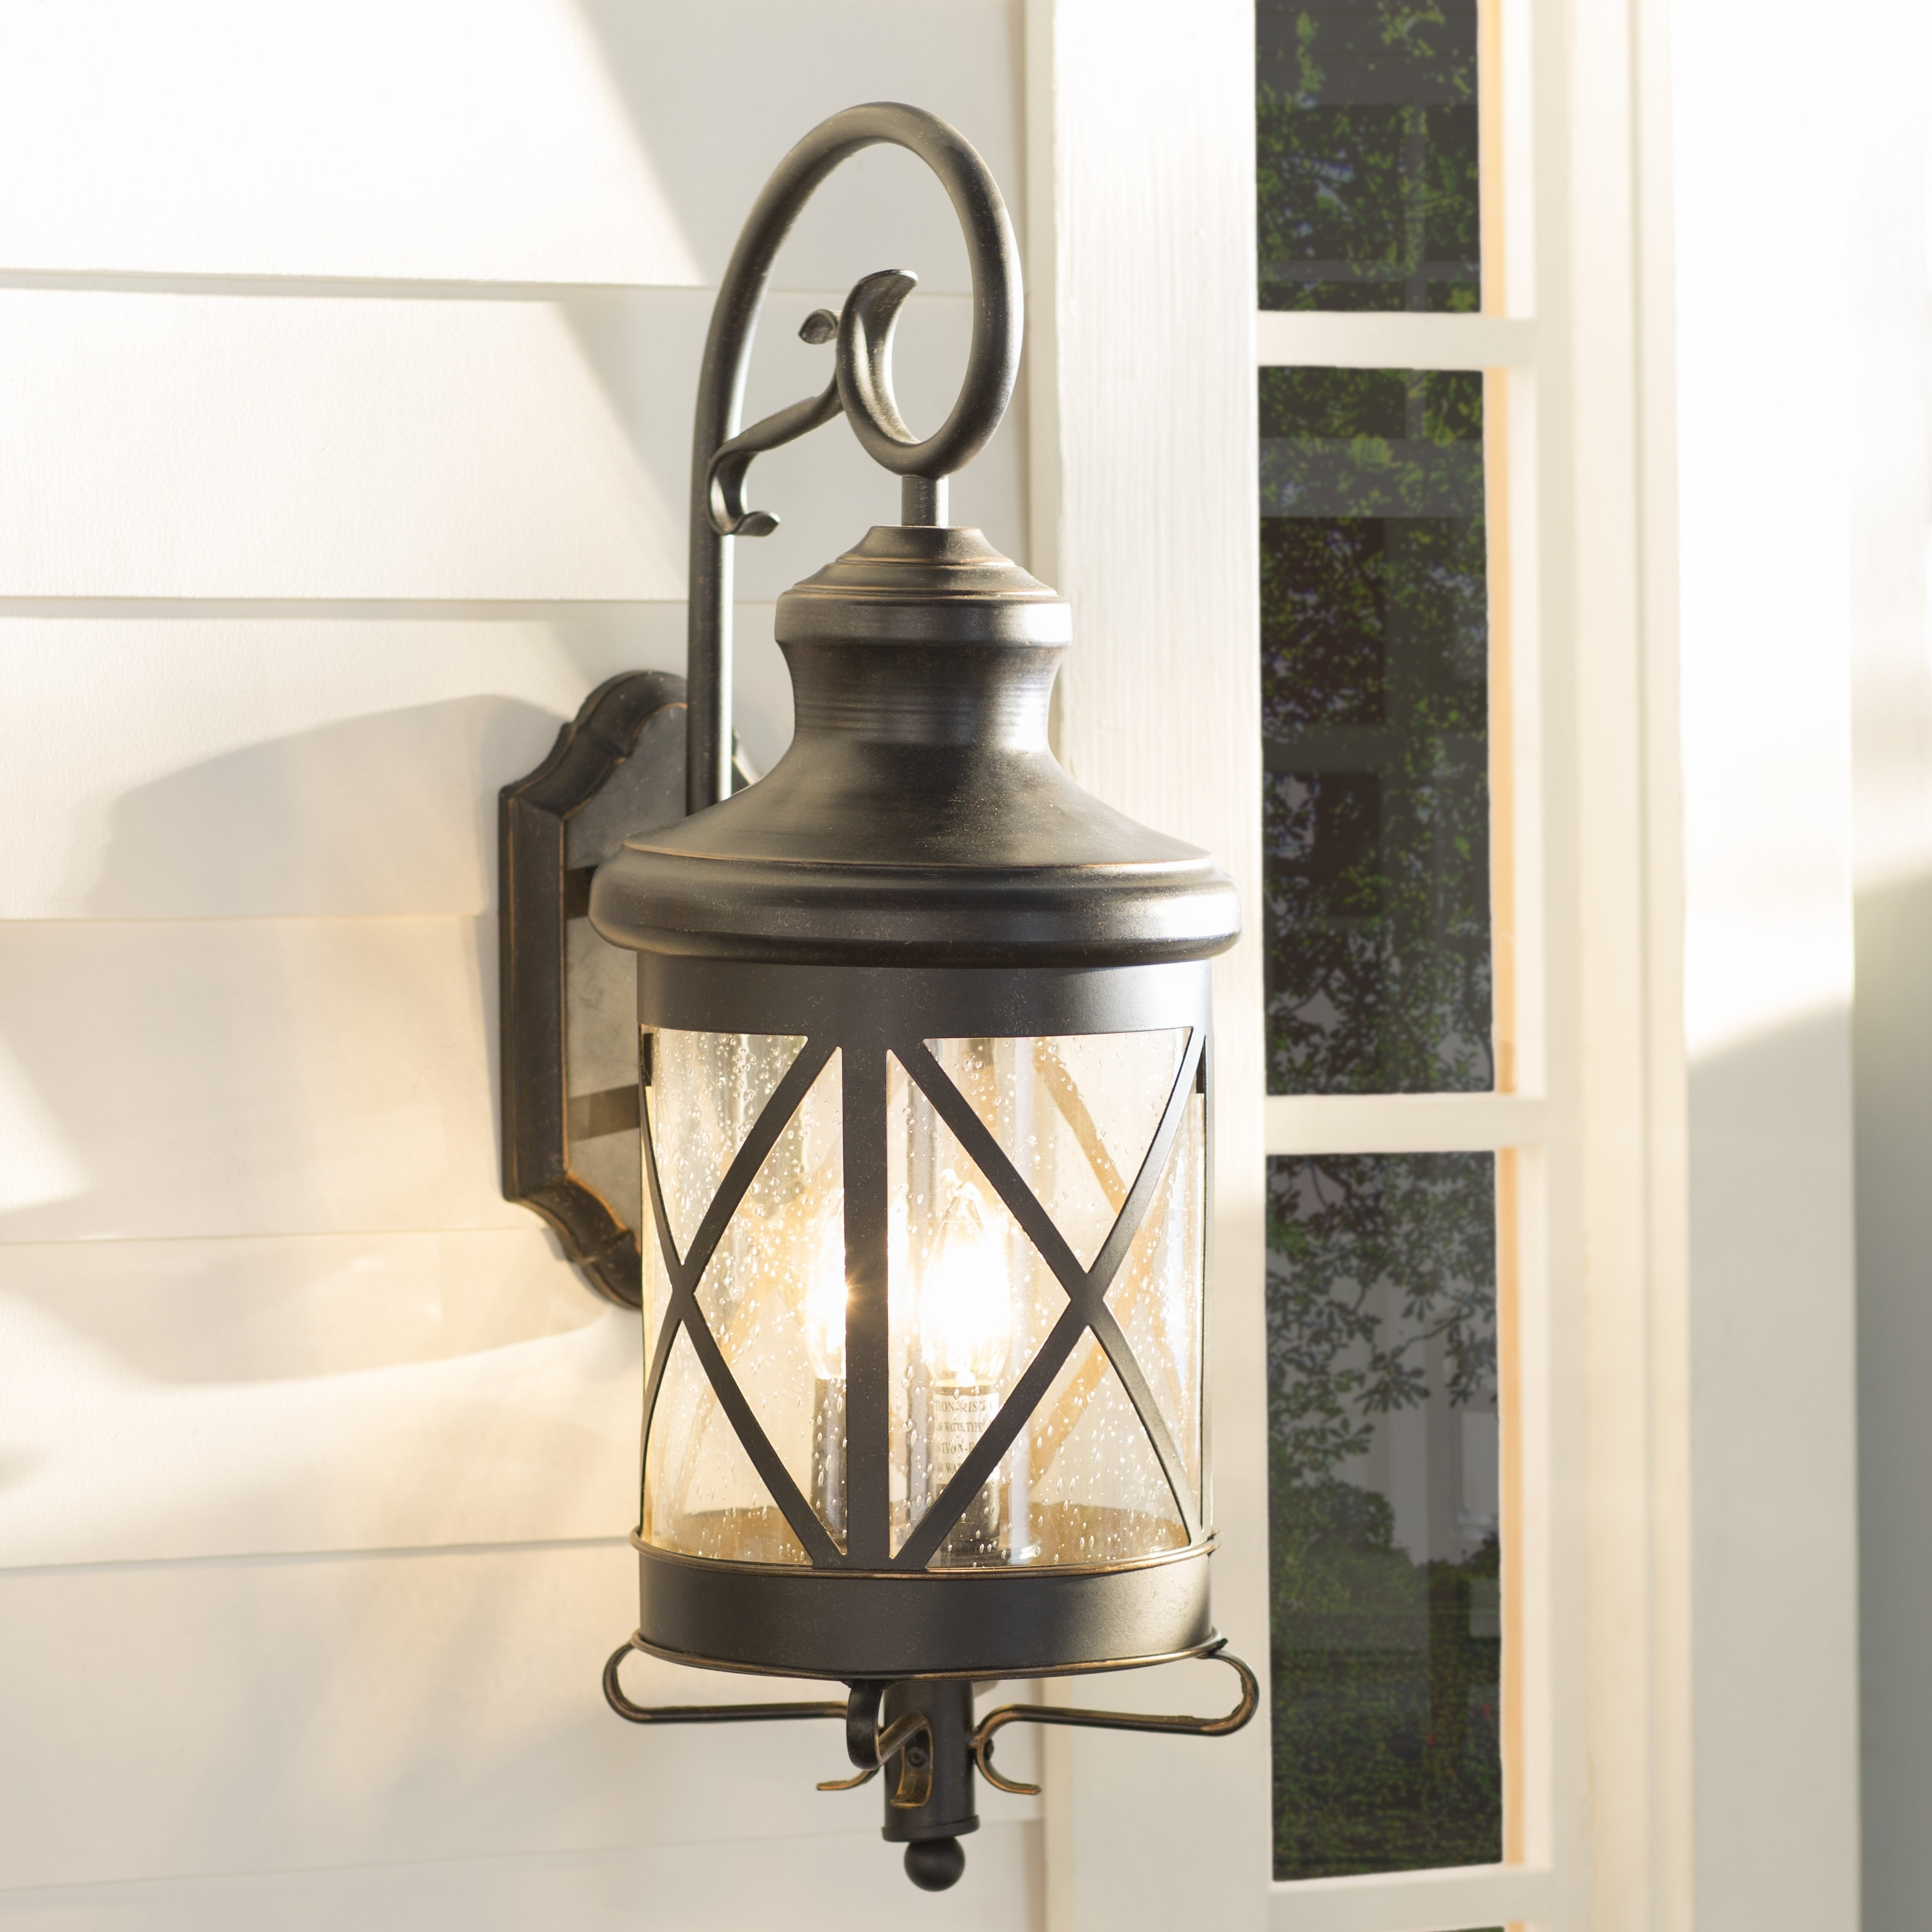 Three Posts Fairbury Outdoor Wall Lantern & Reviews | Wayfair For Outdoor Vinyl Lanterns (View 13 of 20)